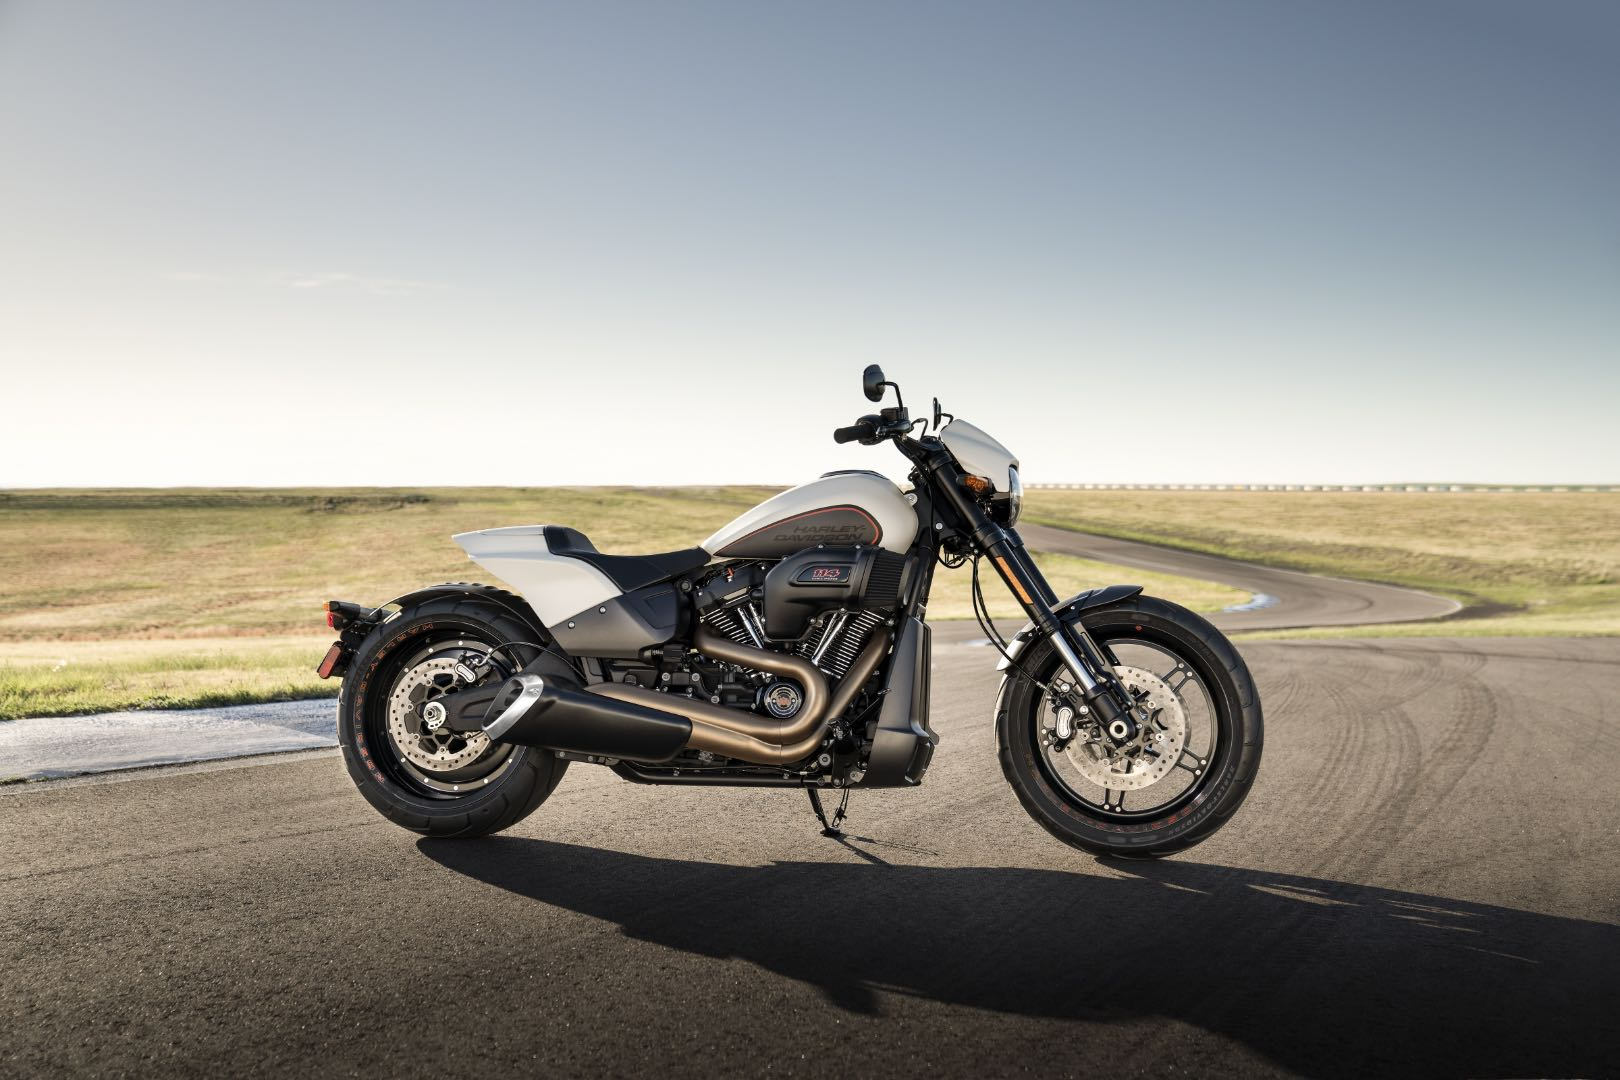 2019 Harley-Davidson FXDR 114 power cruiser